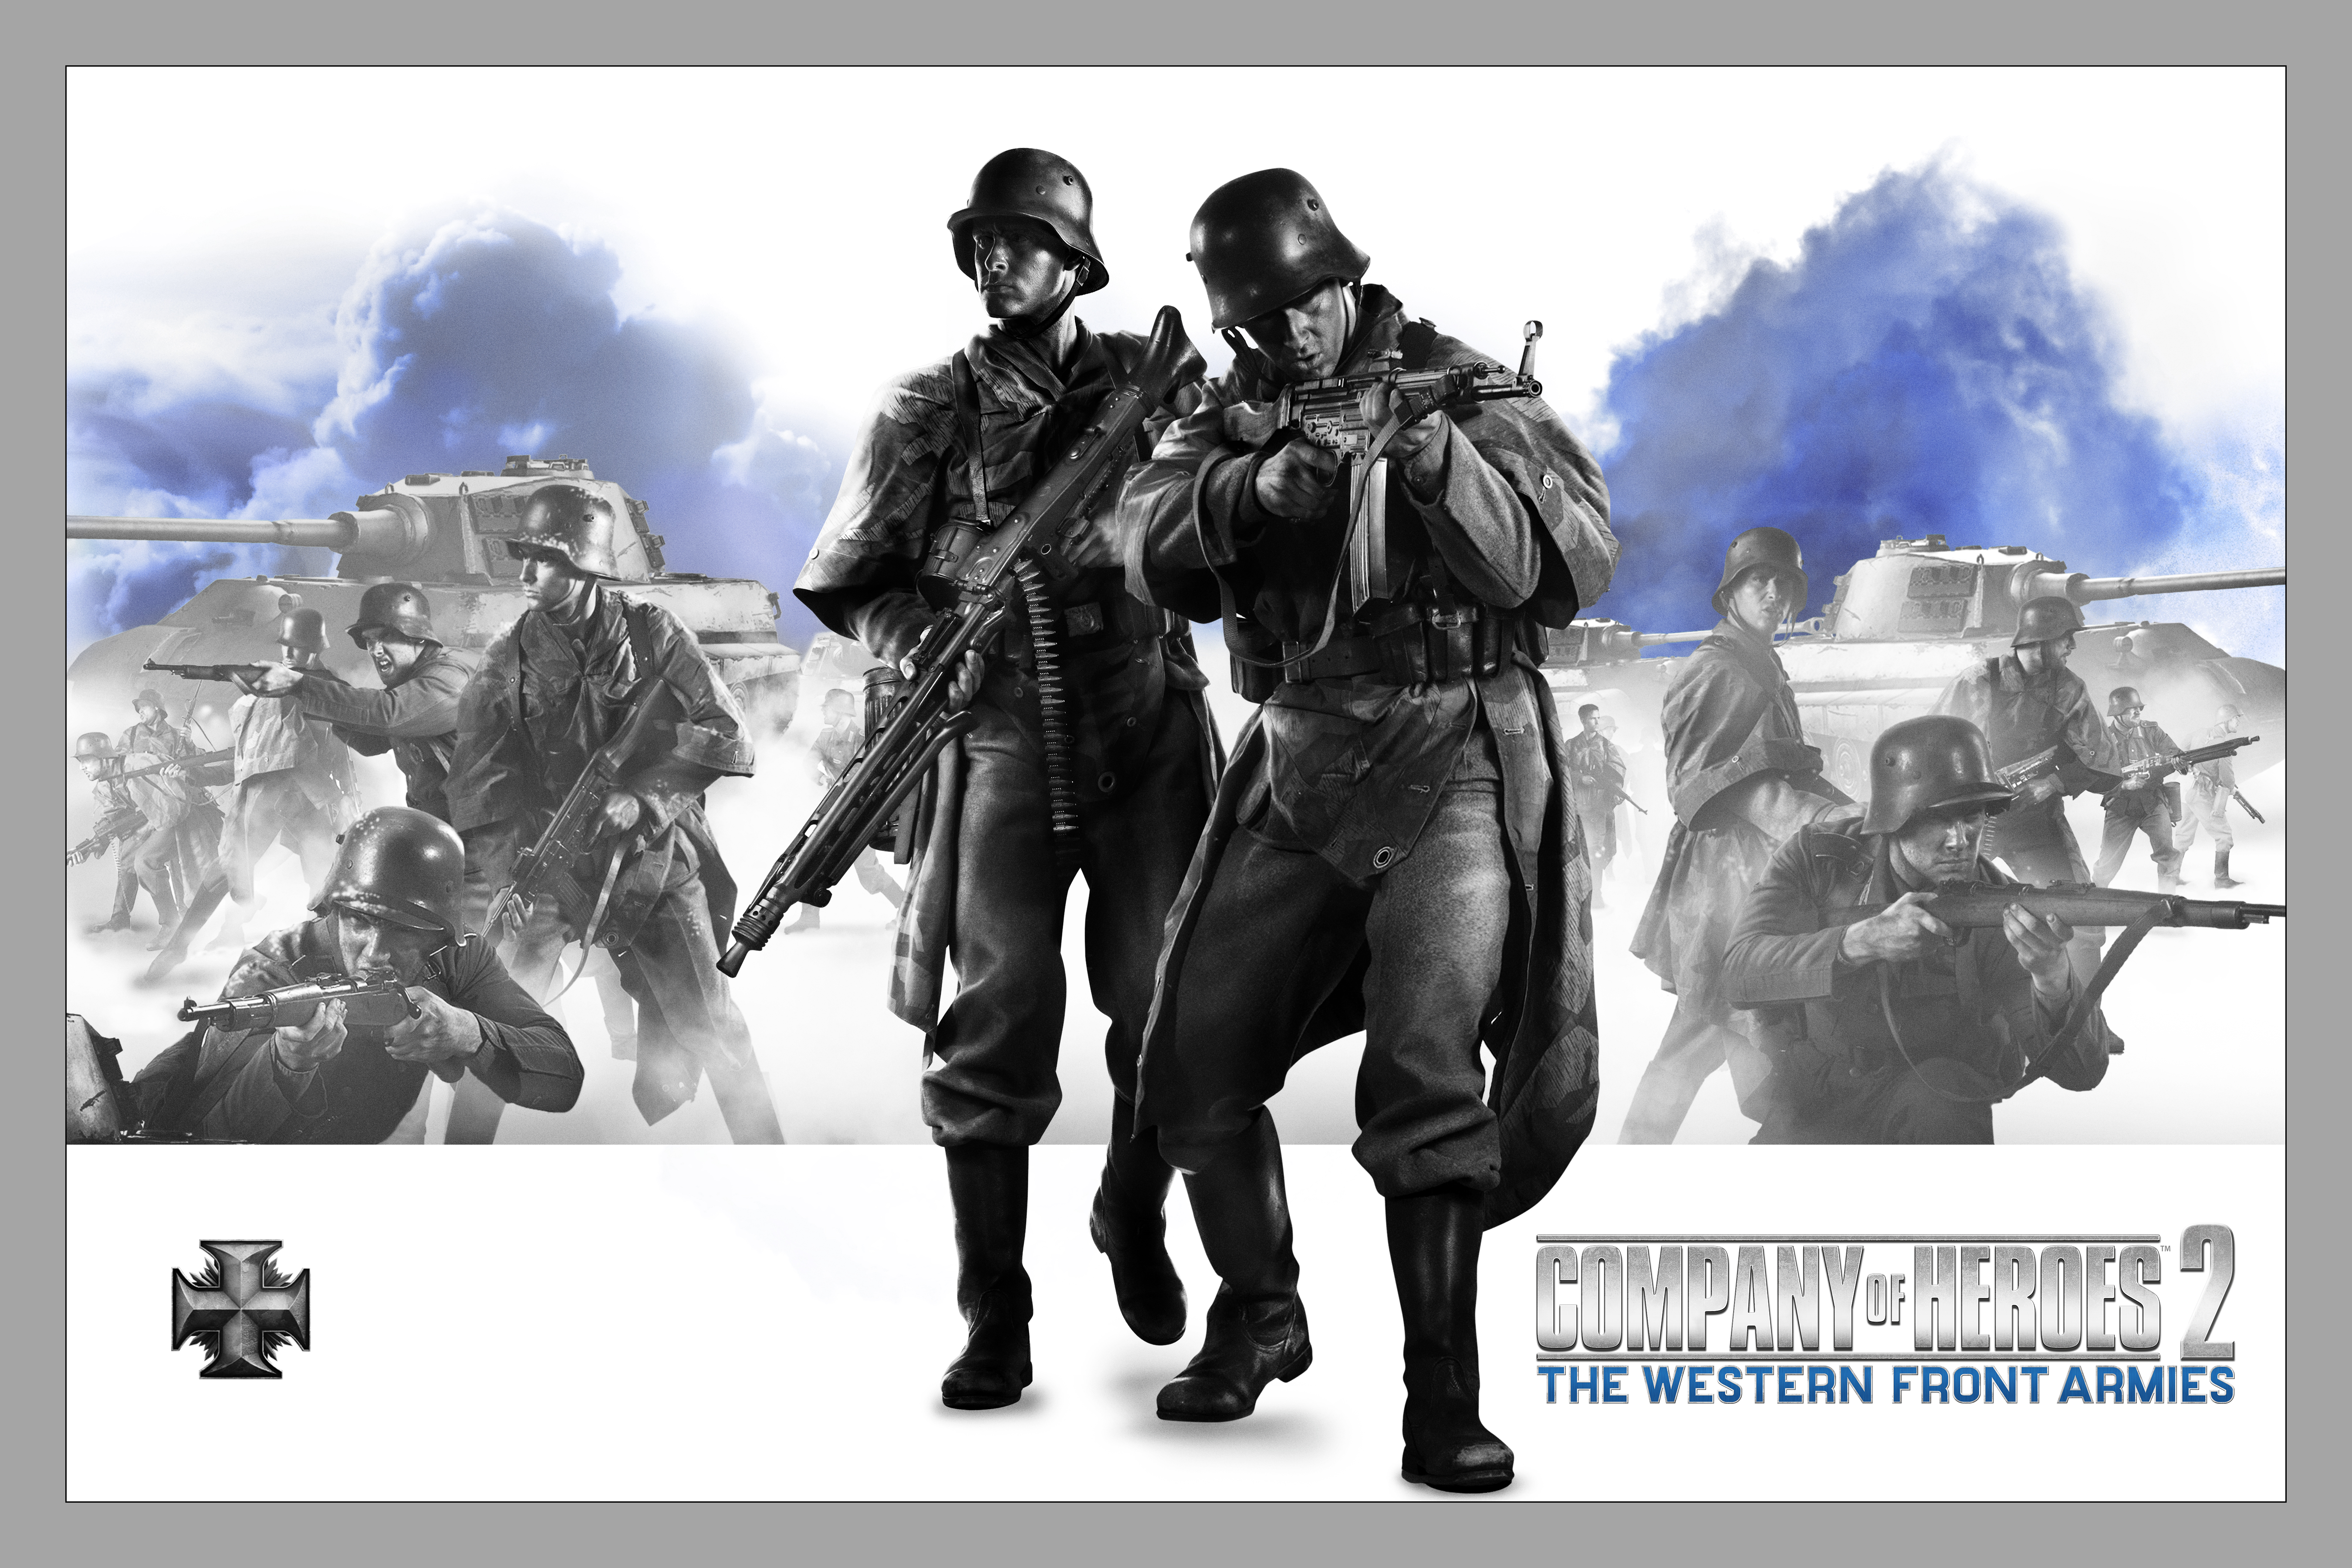 company-of-heroes-2-the-western-front-armies-us-forces-online-game-code